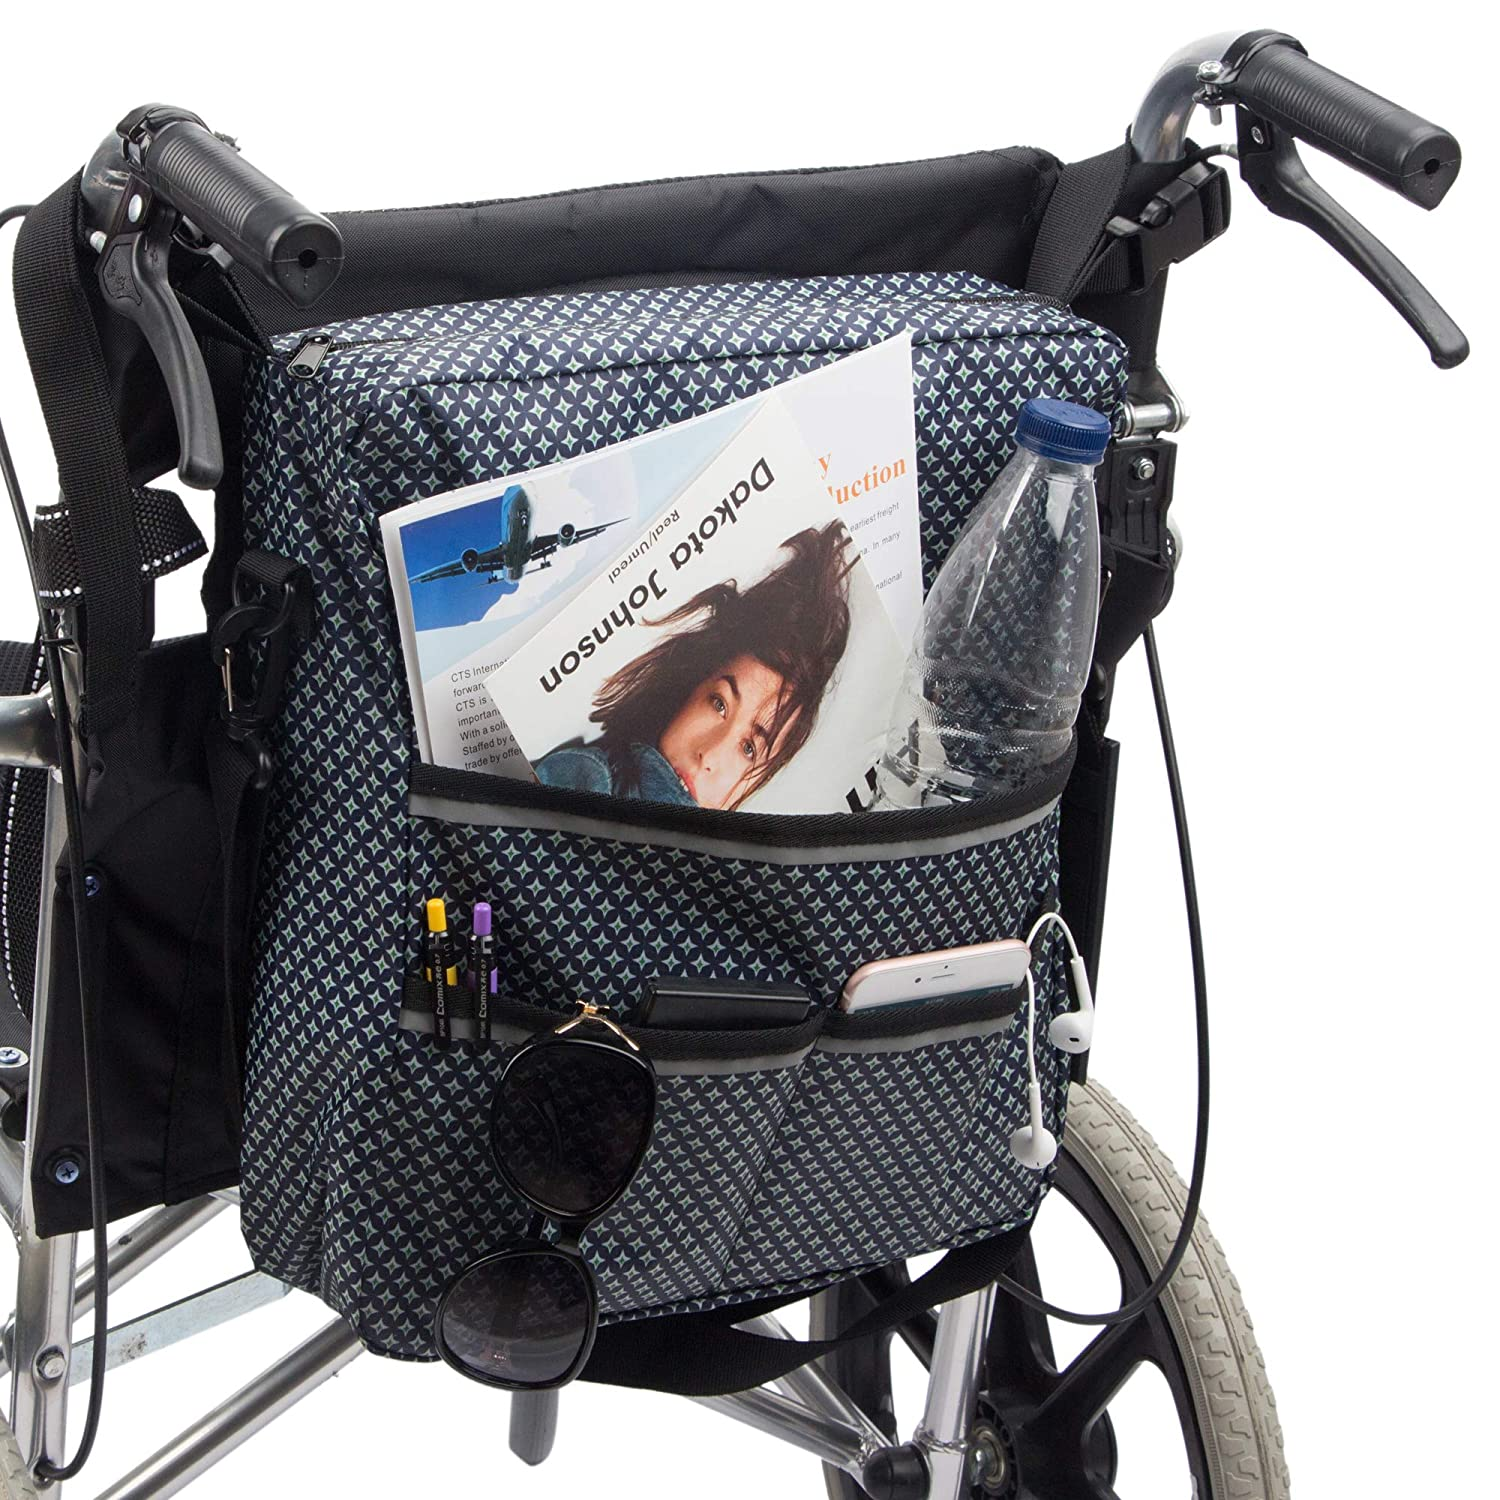 Wheelchair Bag by Pacmaxi - Wheelchair Backpack Bag with Reflective Tape - Wheelchair Accessories Storage Bag - Walker Accessible Pouch and Pockets for Unisex Handicap Elderly (Navy Blue)